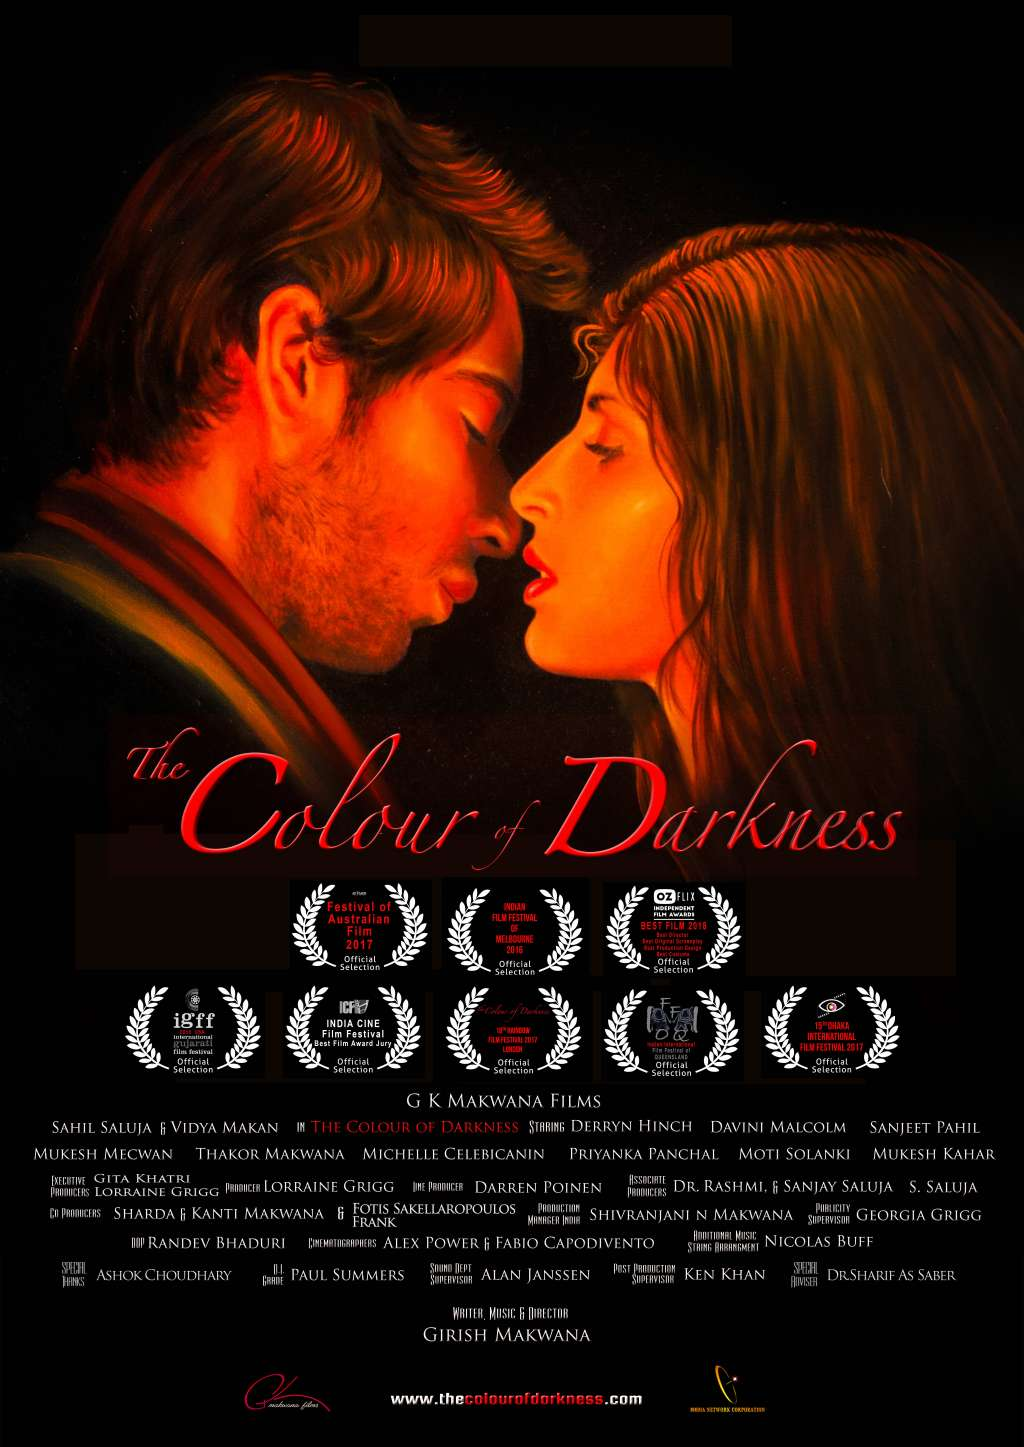 The Colour of Darkness kapak